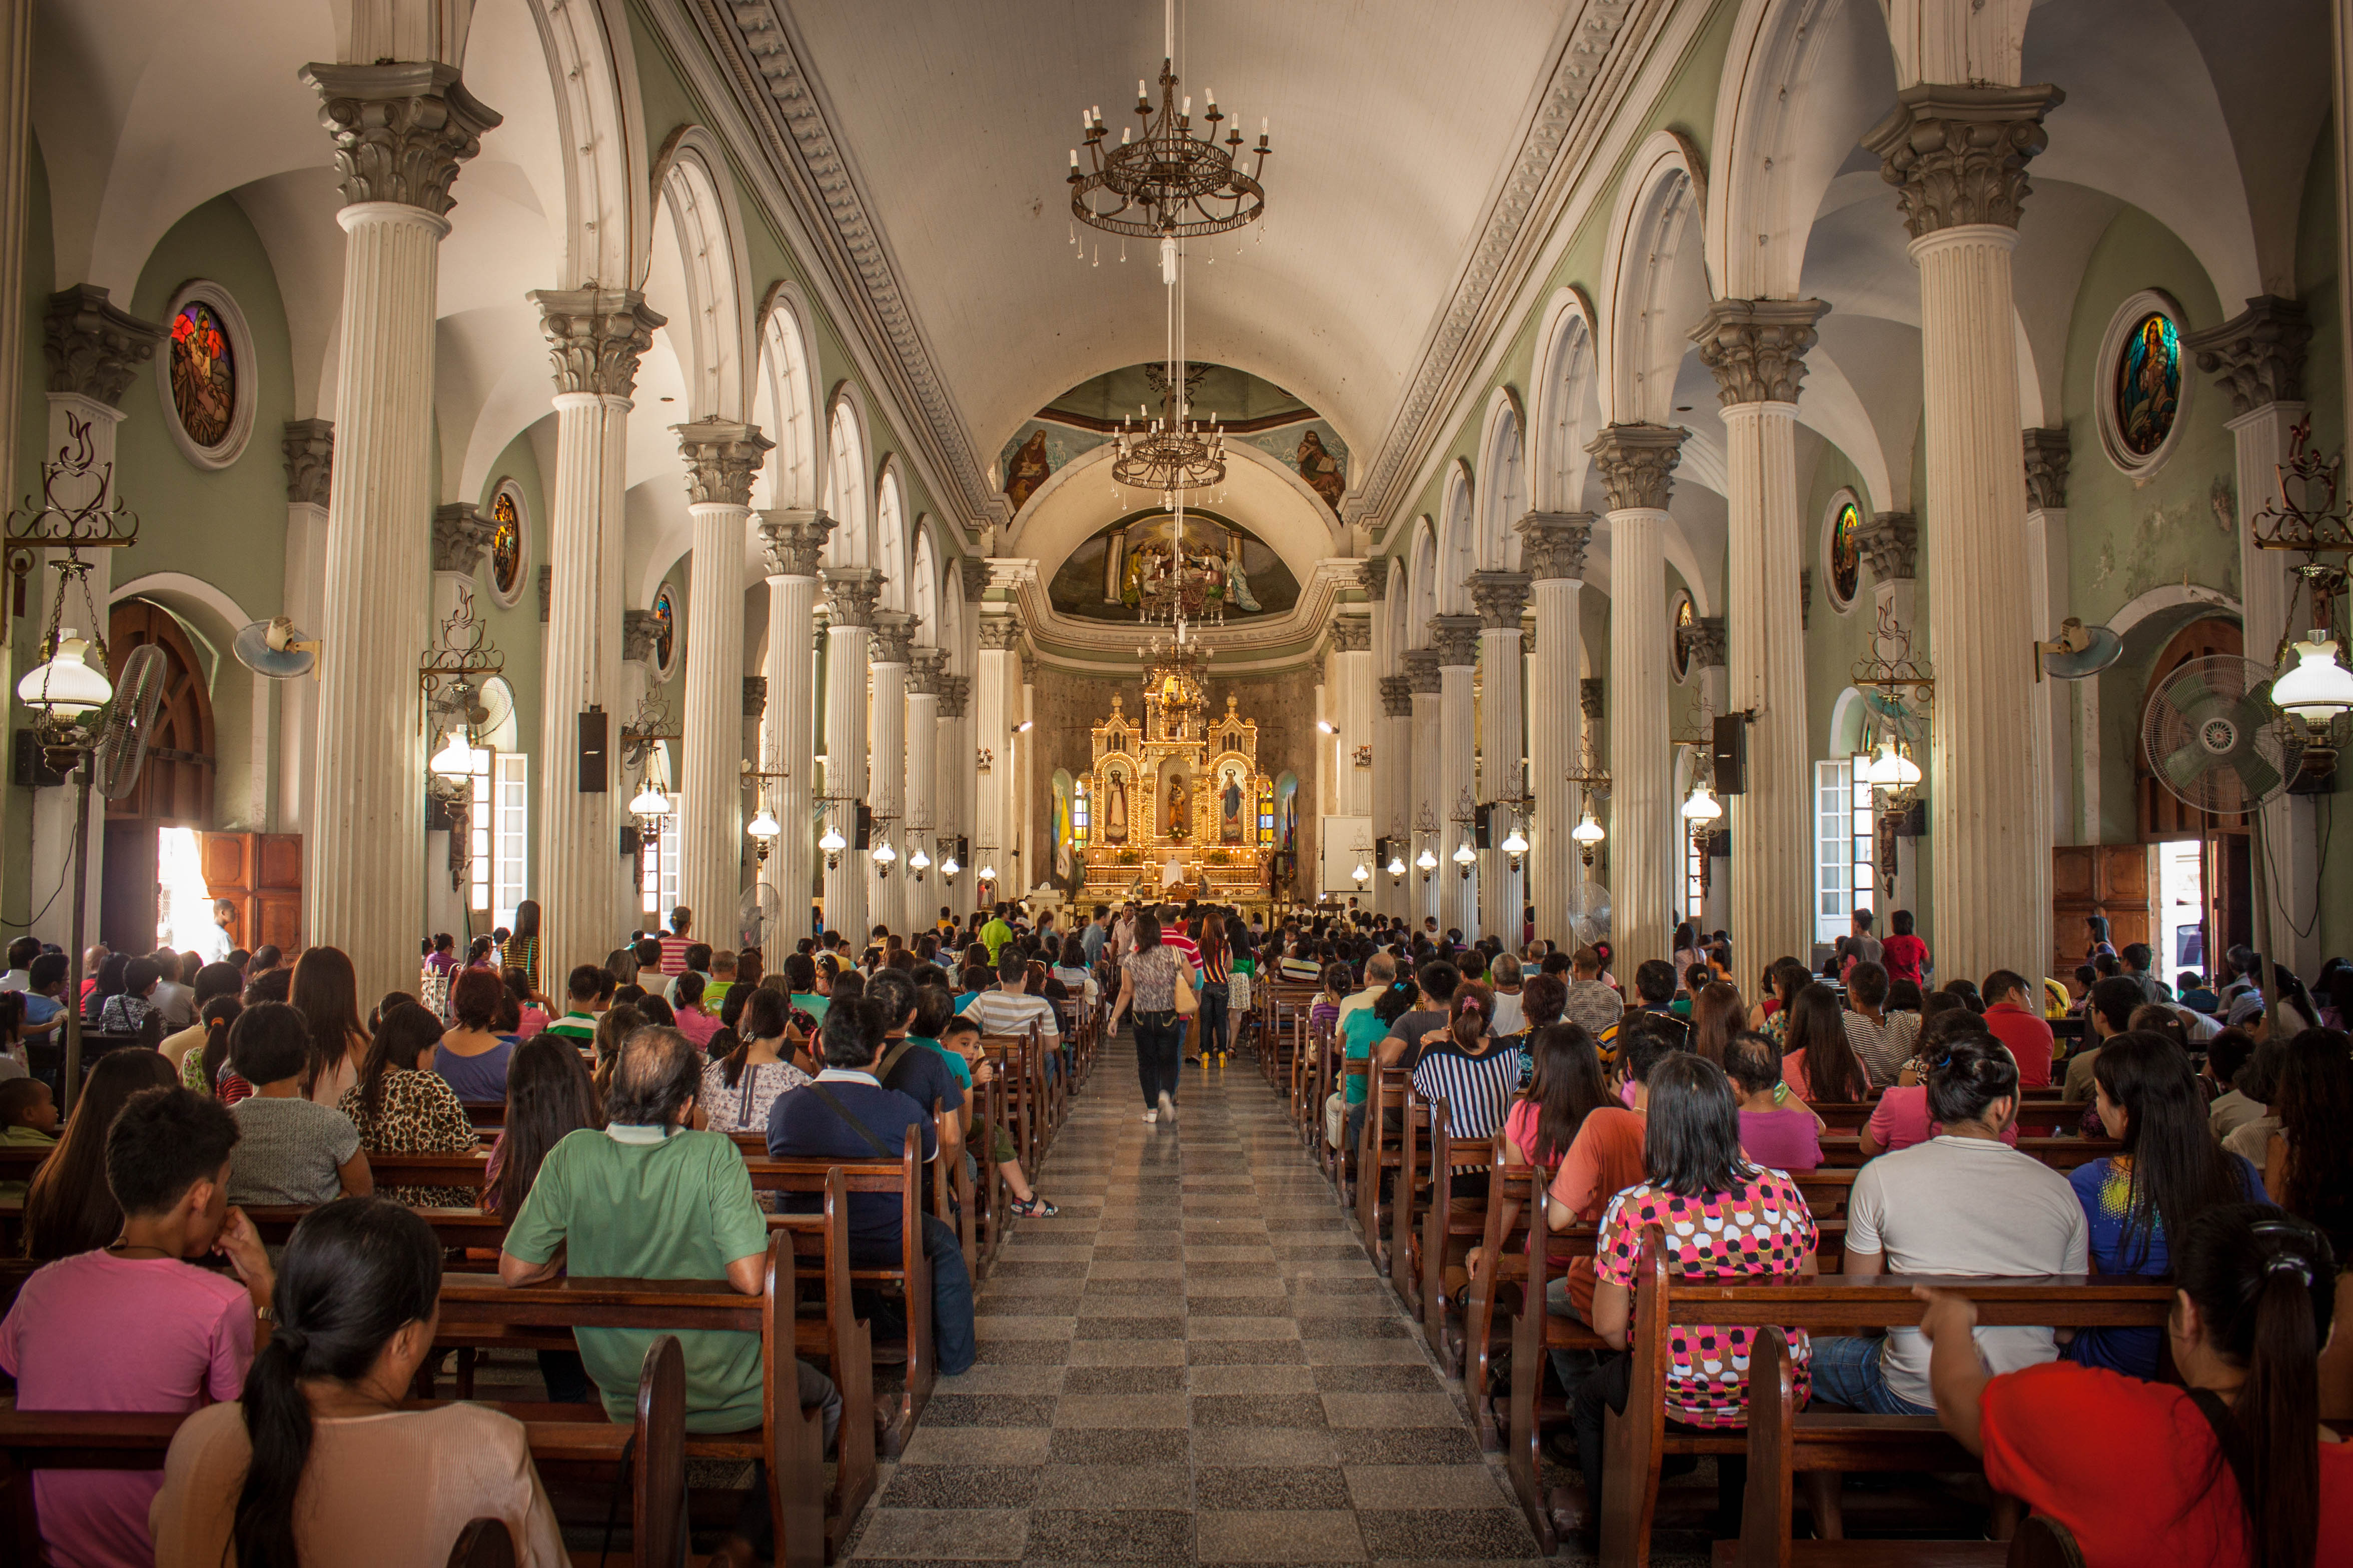 Inside Iloilo San Jose Church